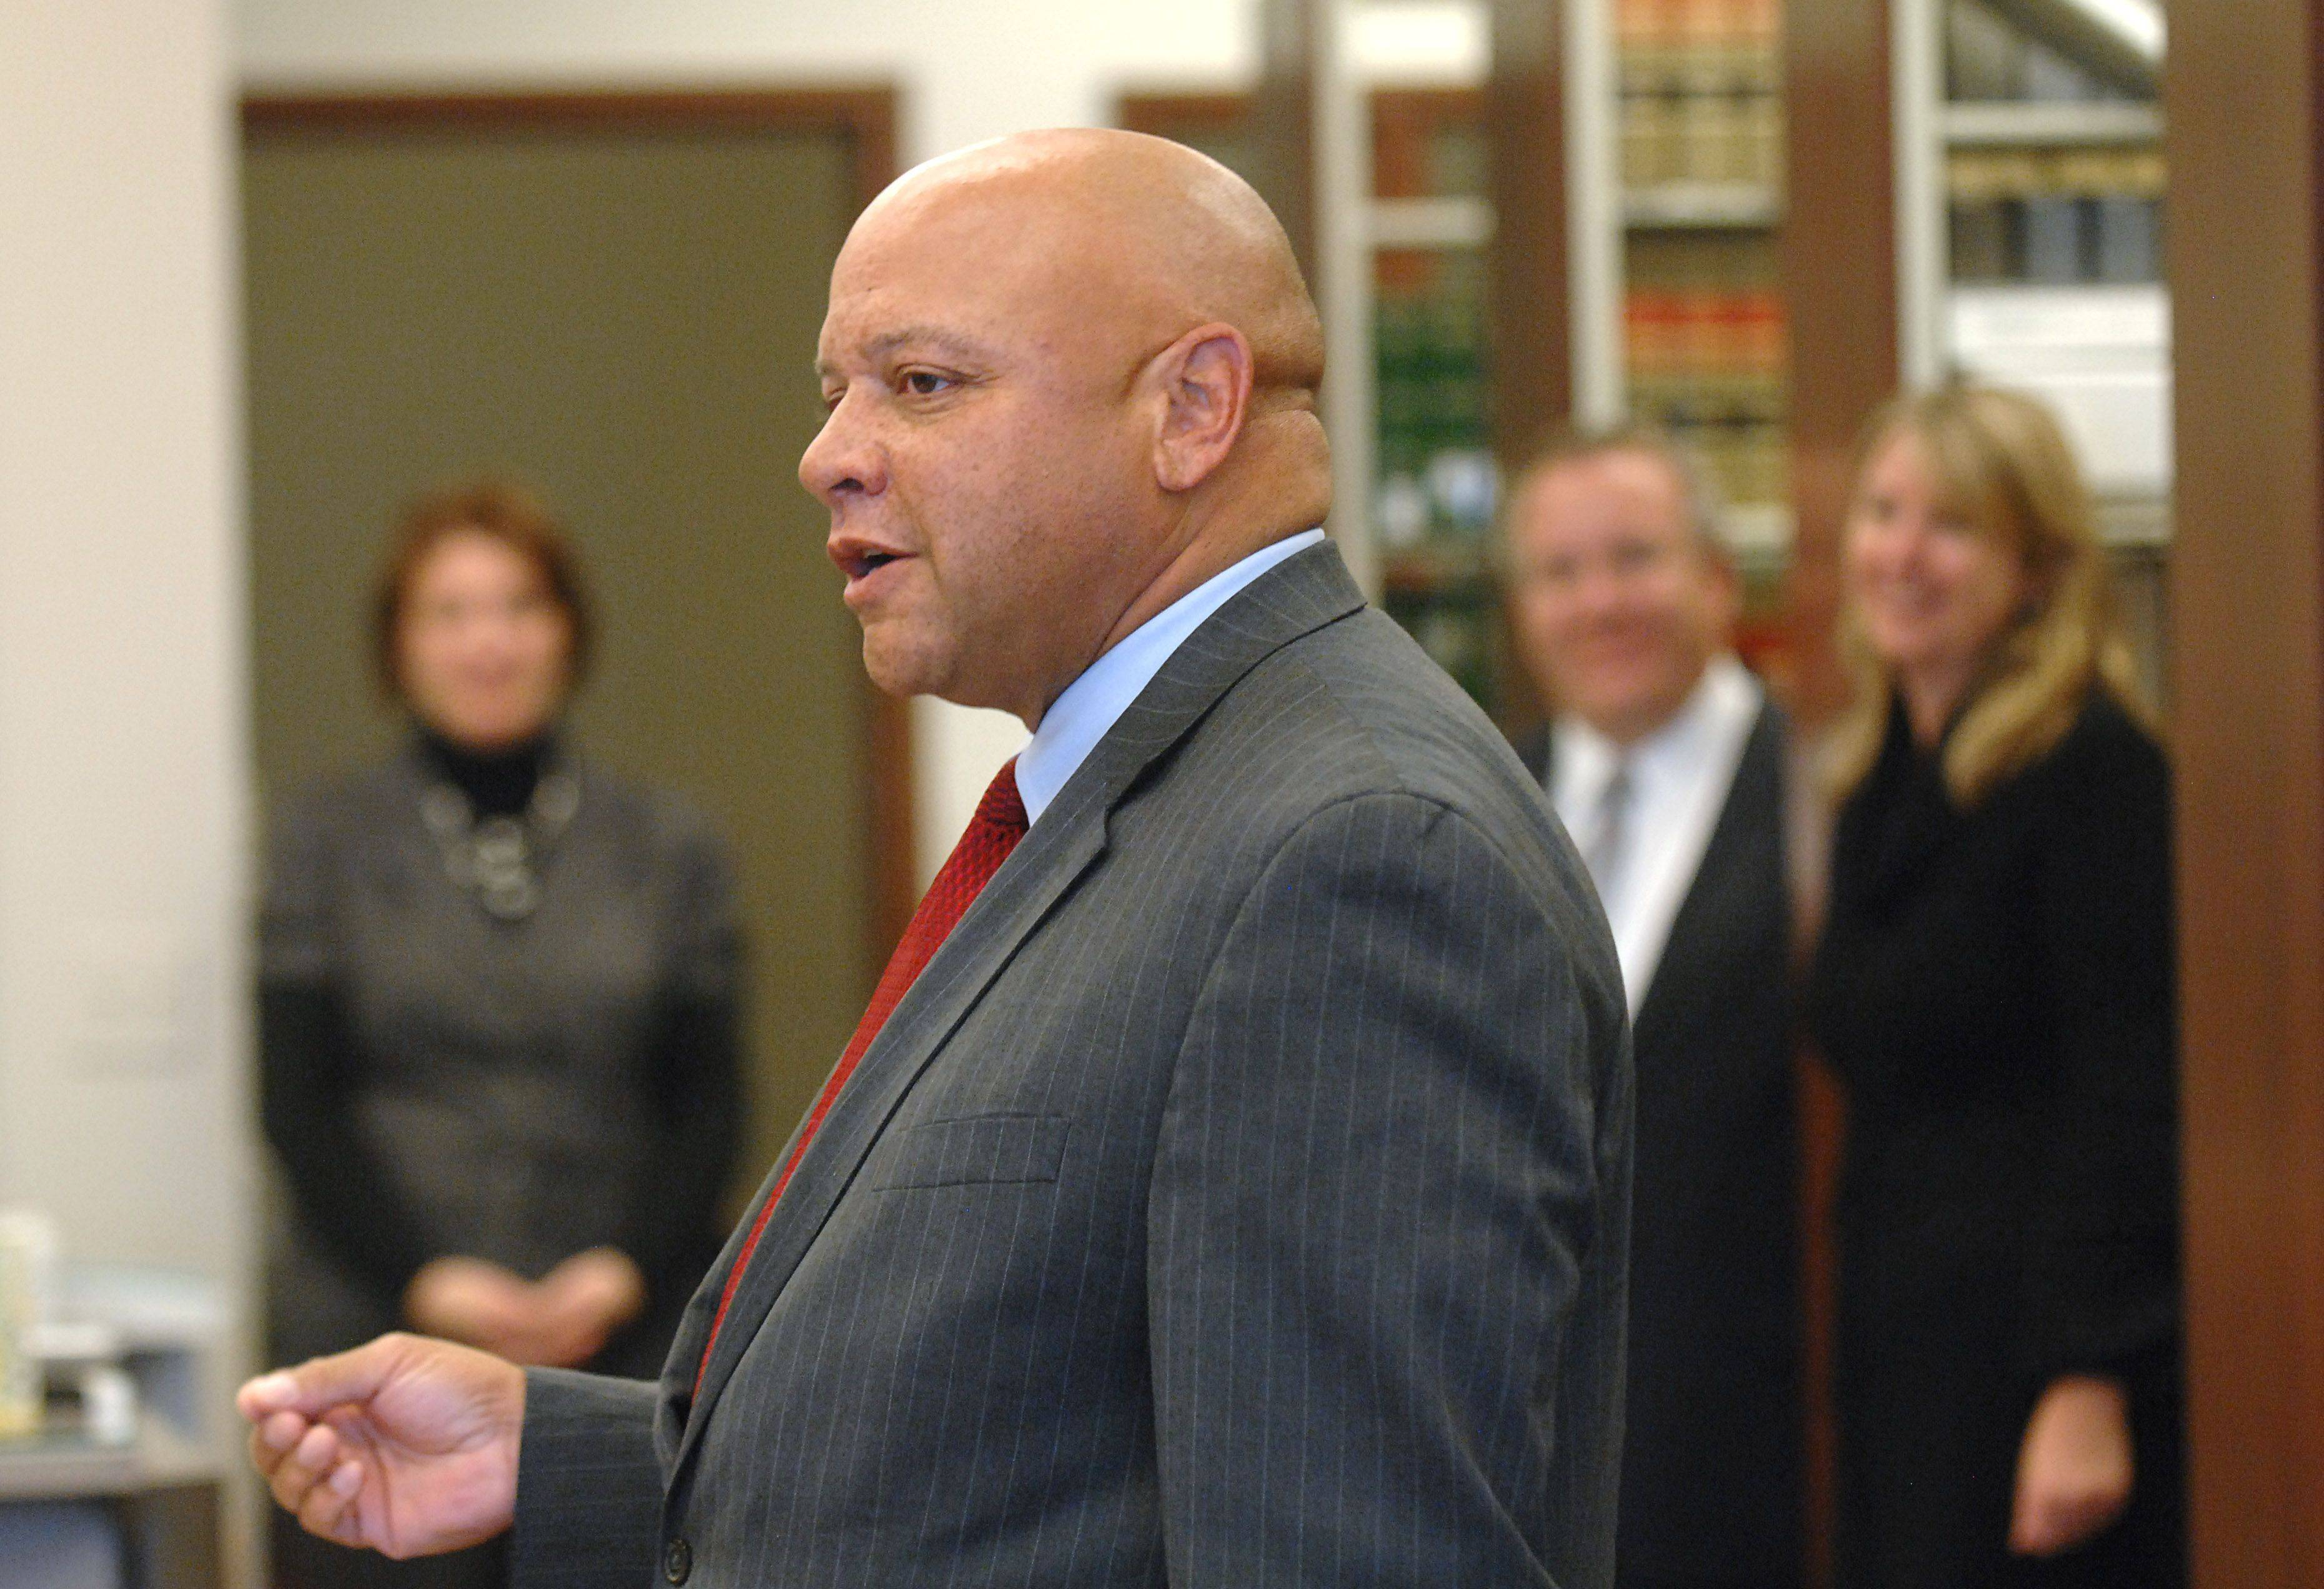 Brown reflects on tenure as Kane County's chief judge